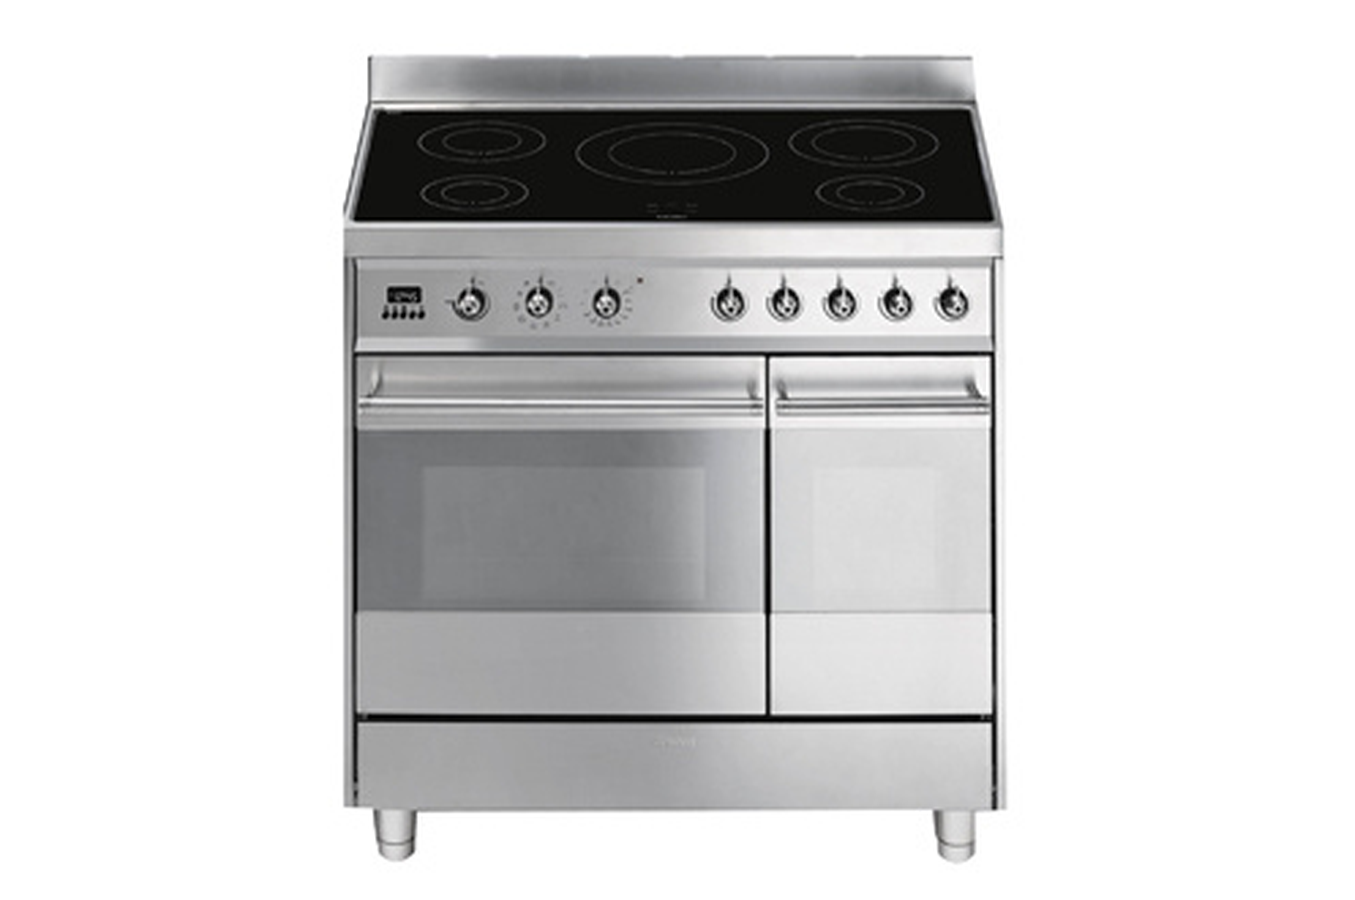 Piano de cuisson smeg c92ipx8 inox 3399168 darty - Piano induction smeg ...